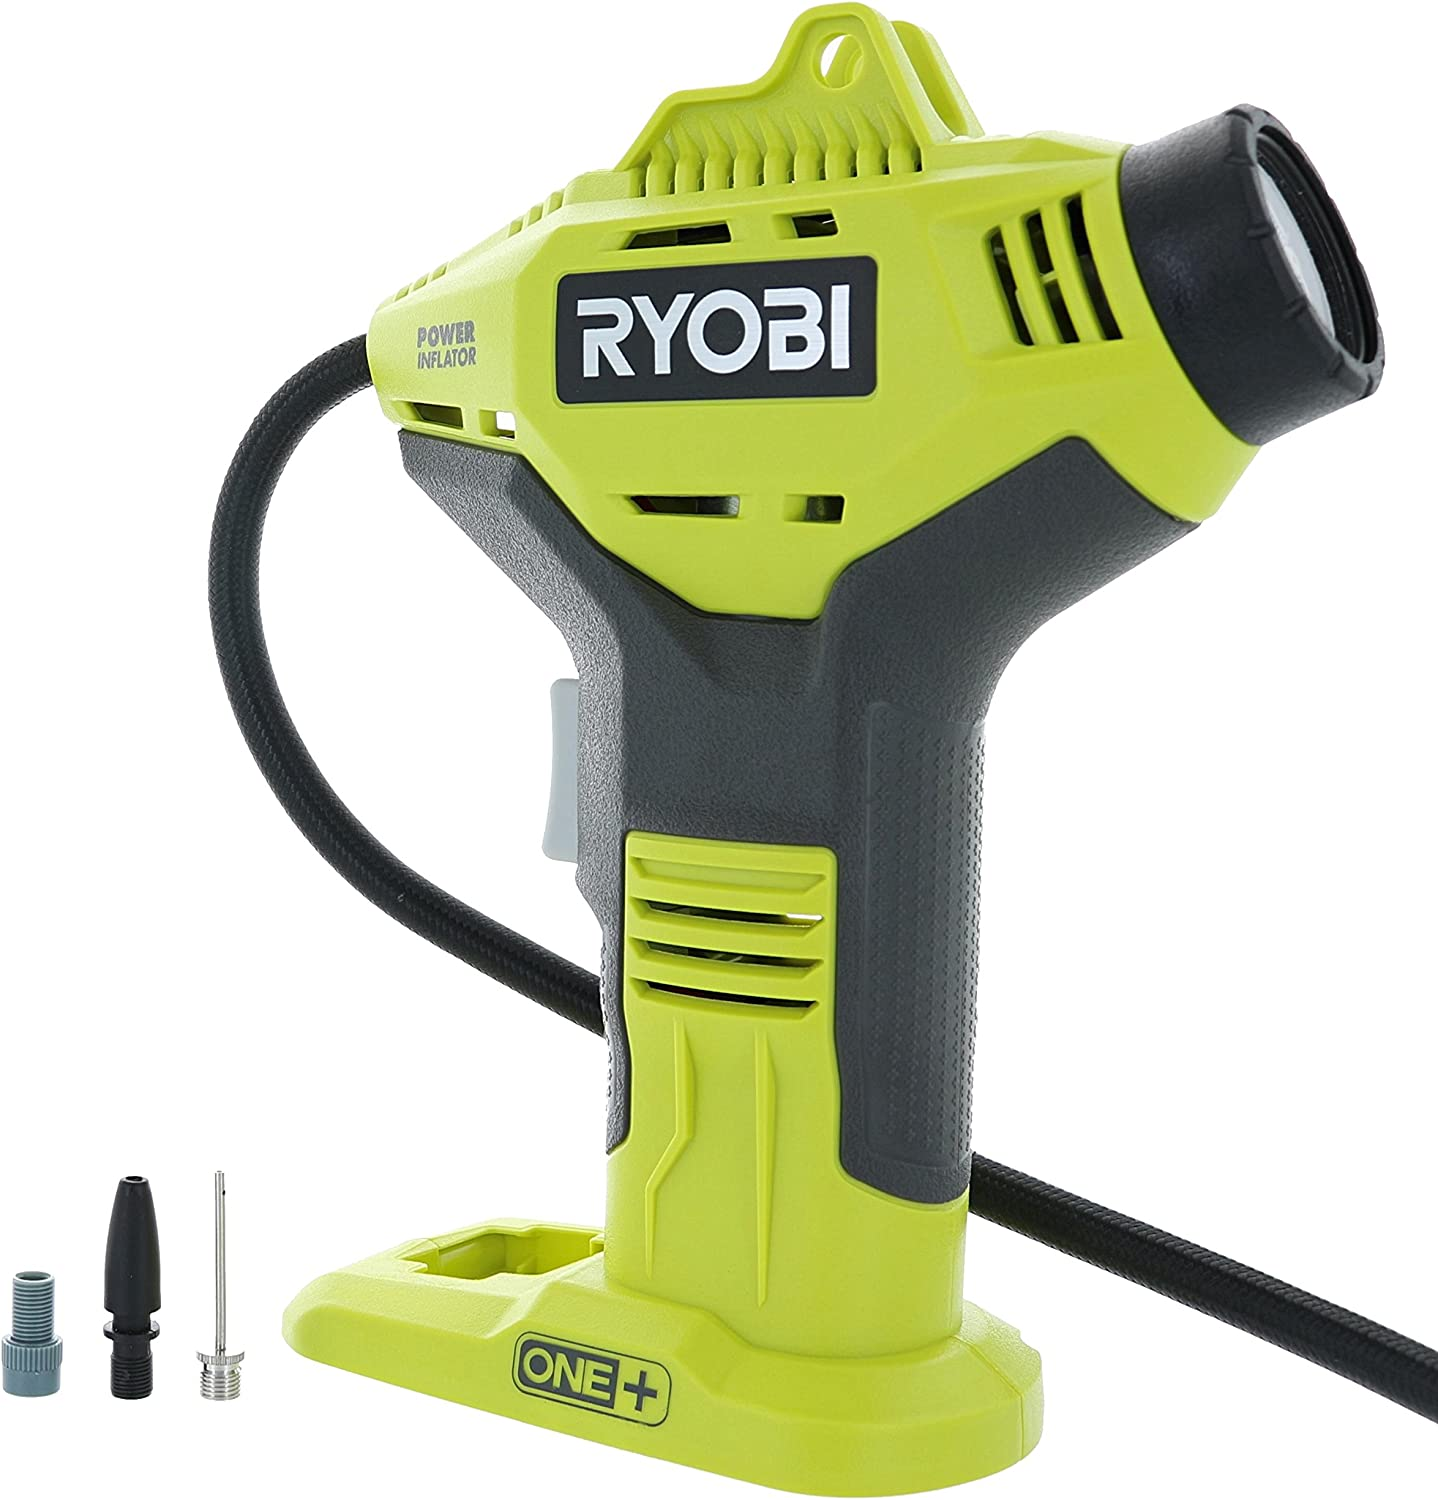 Battery Not Included, Power Tool Only Portable Cordless Power Inflator for Tires Ryobi P737 18-Volt ONE